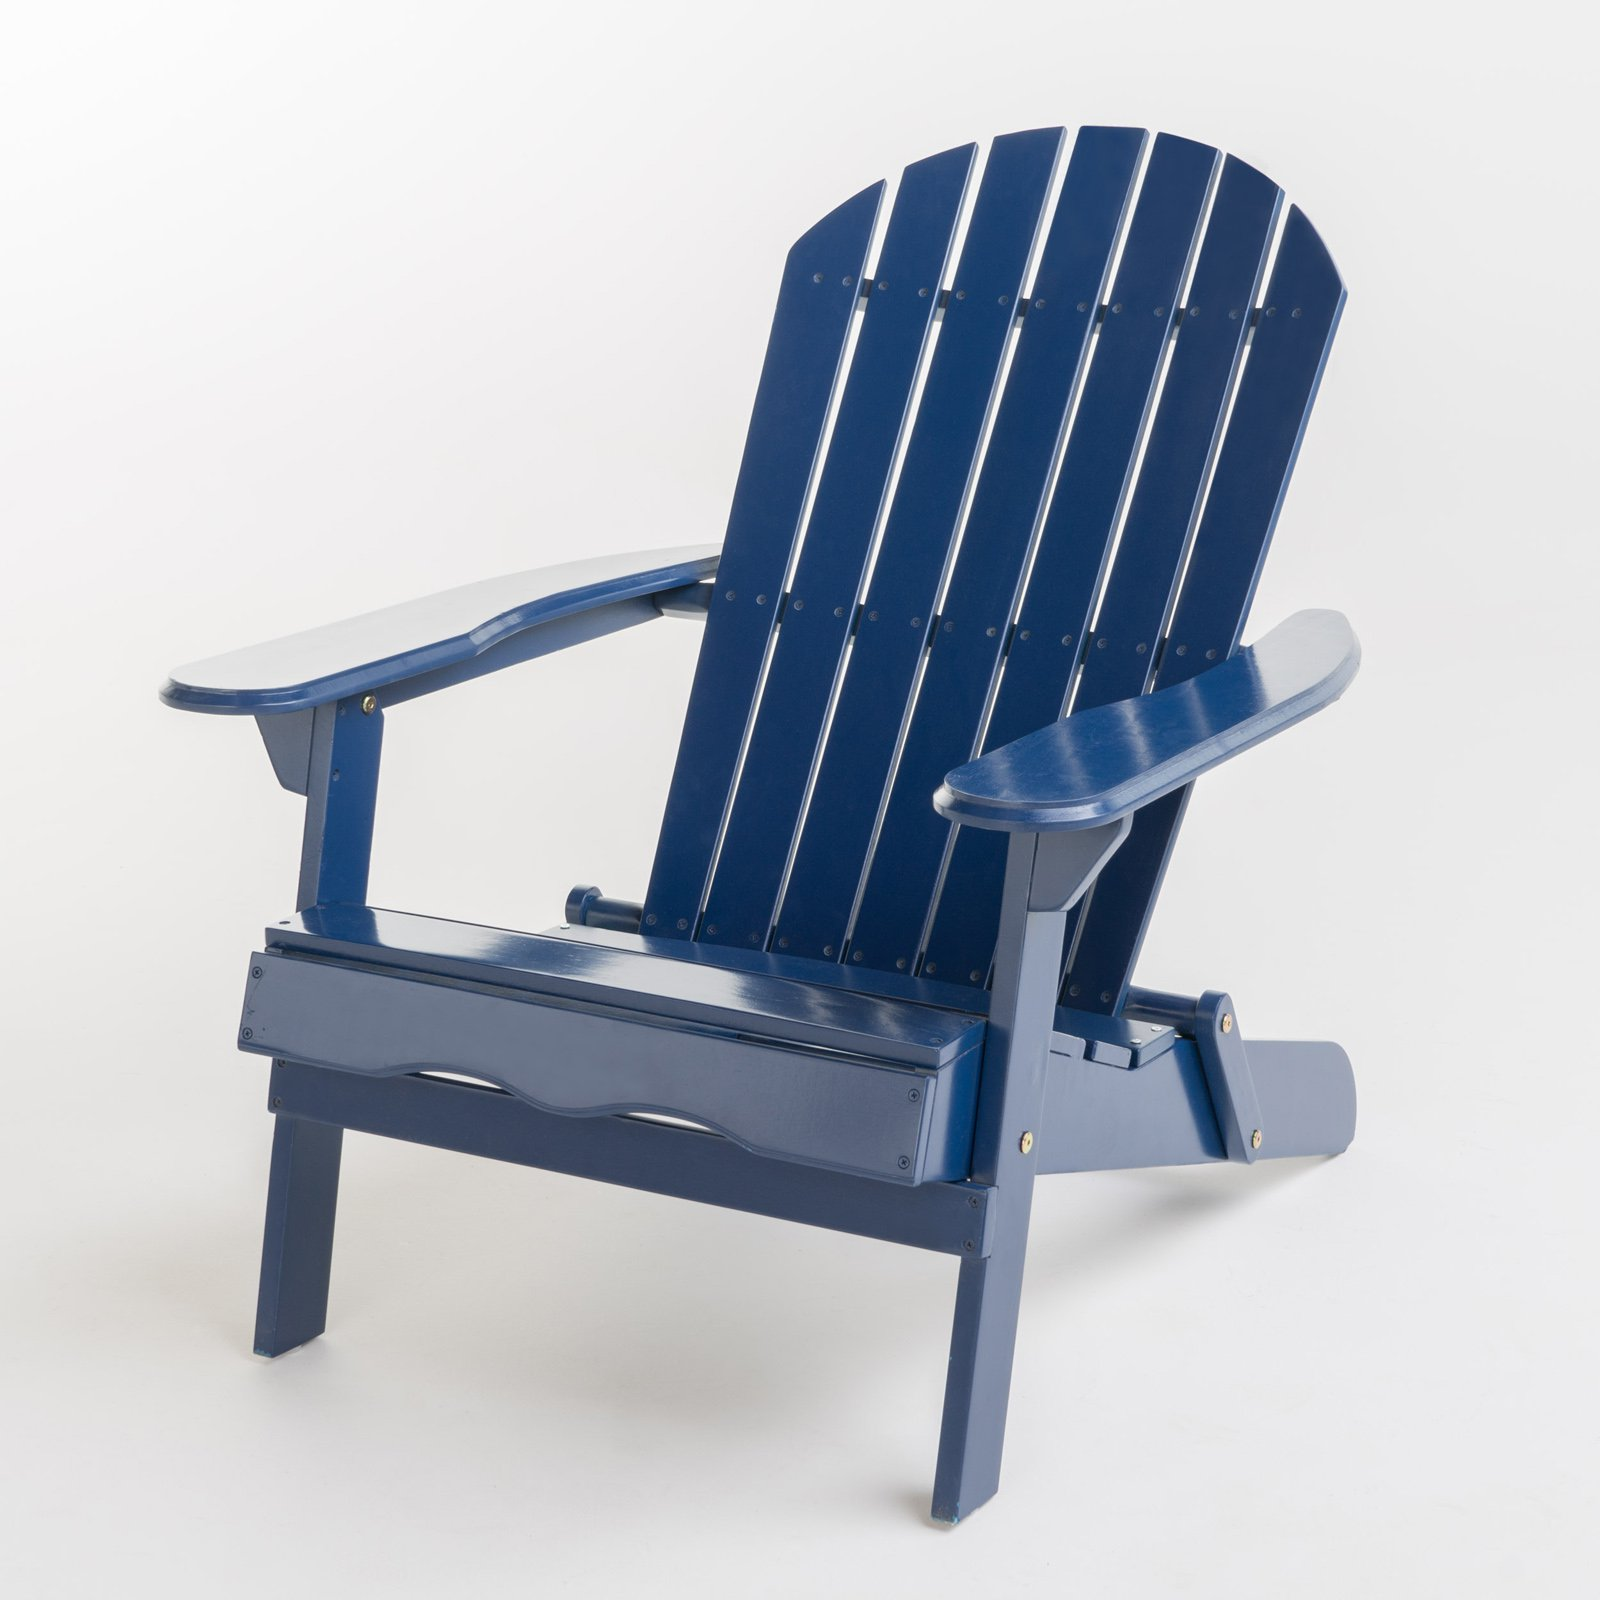 Backyard Chairs Outdoor Foldable Adirondack Chair In 2019 Products Wood